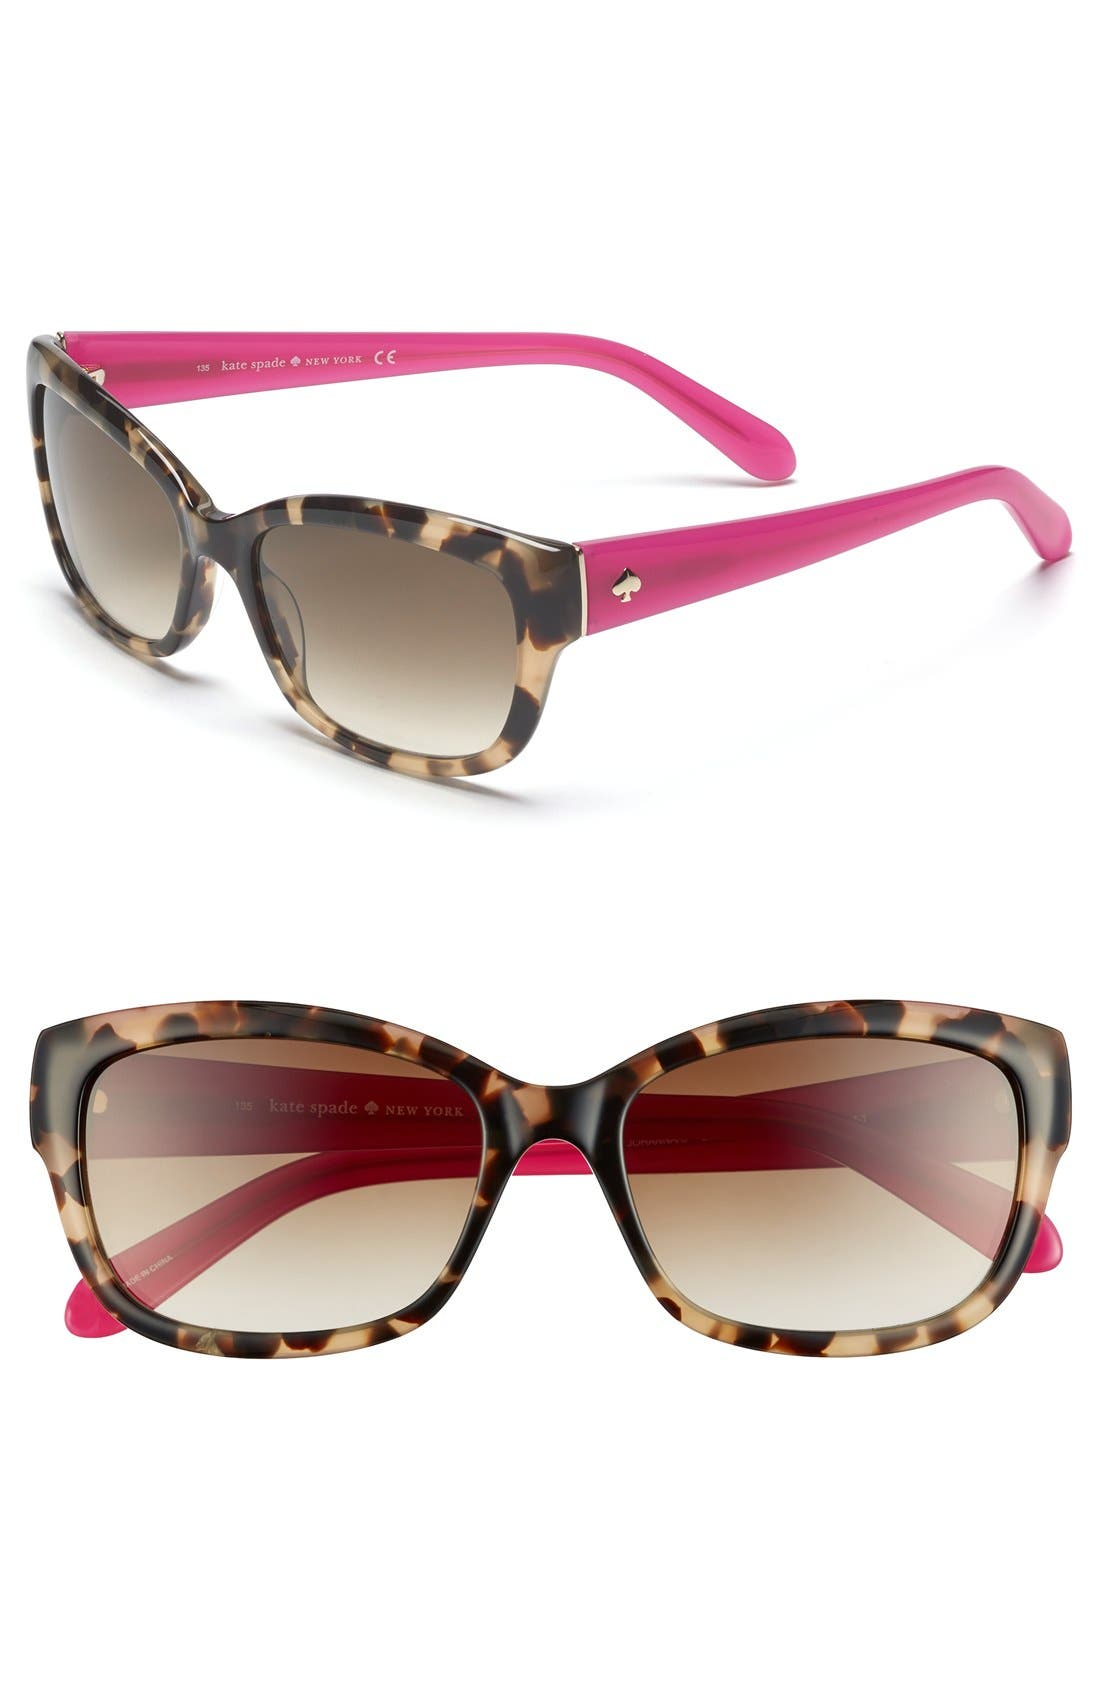 Alternate Image 1 Selected - kate spade 'johanna' 53mm retro sunglasses